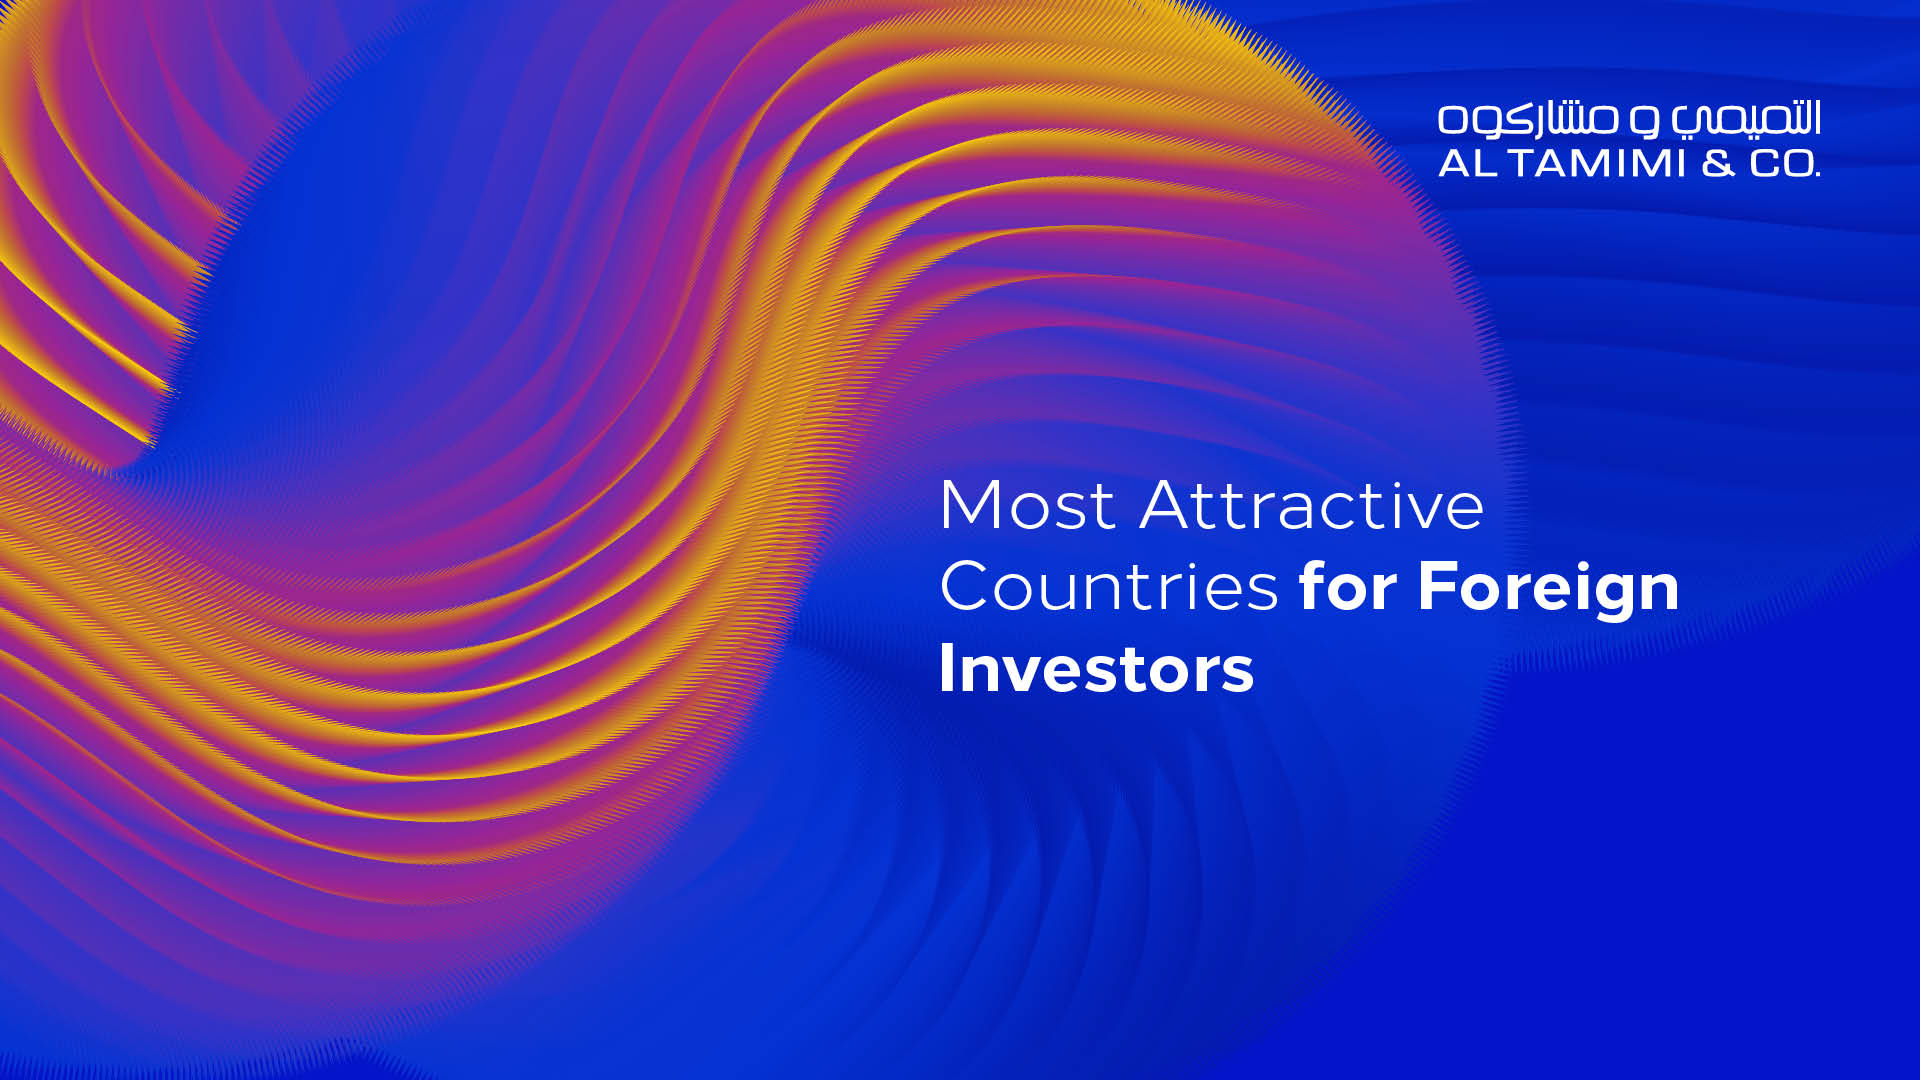 Which countries in the MENA region are most attractive for foreign investors and companies?